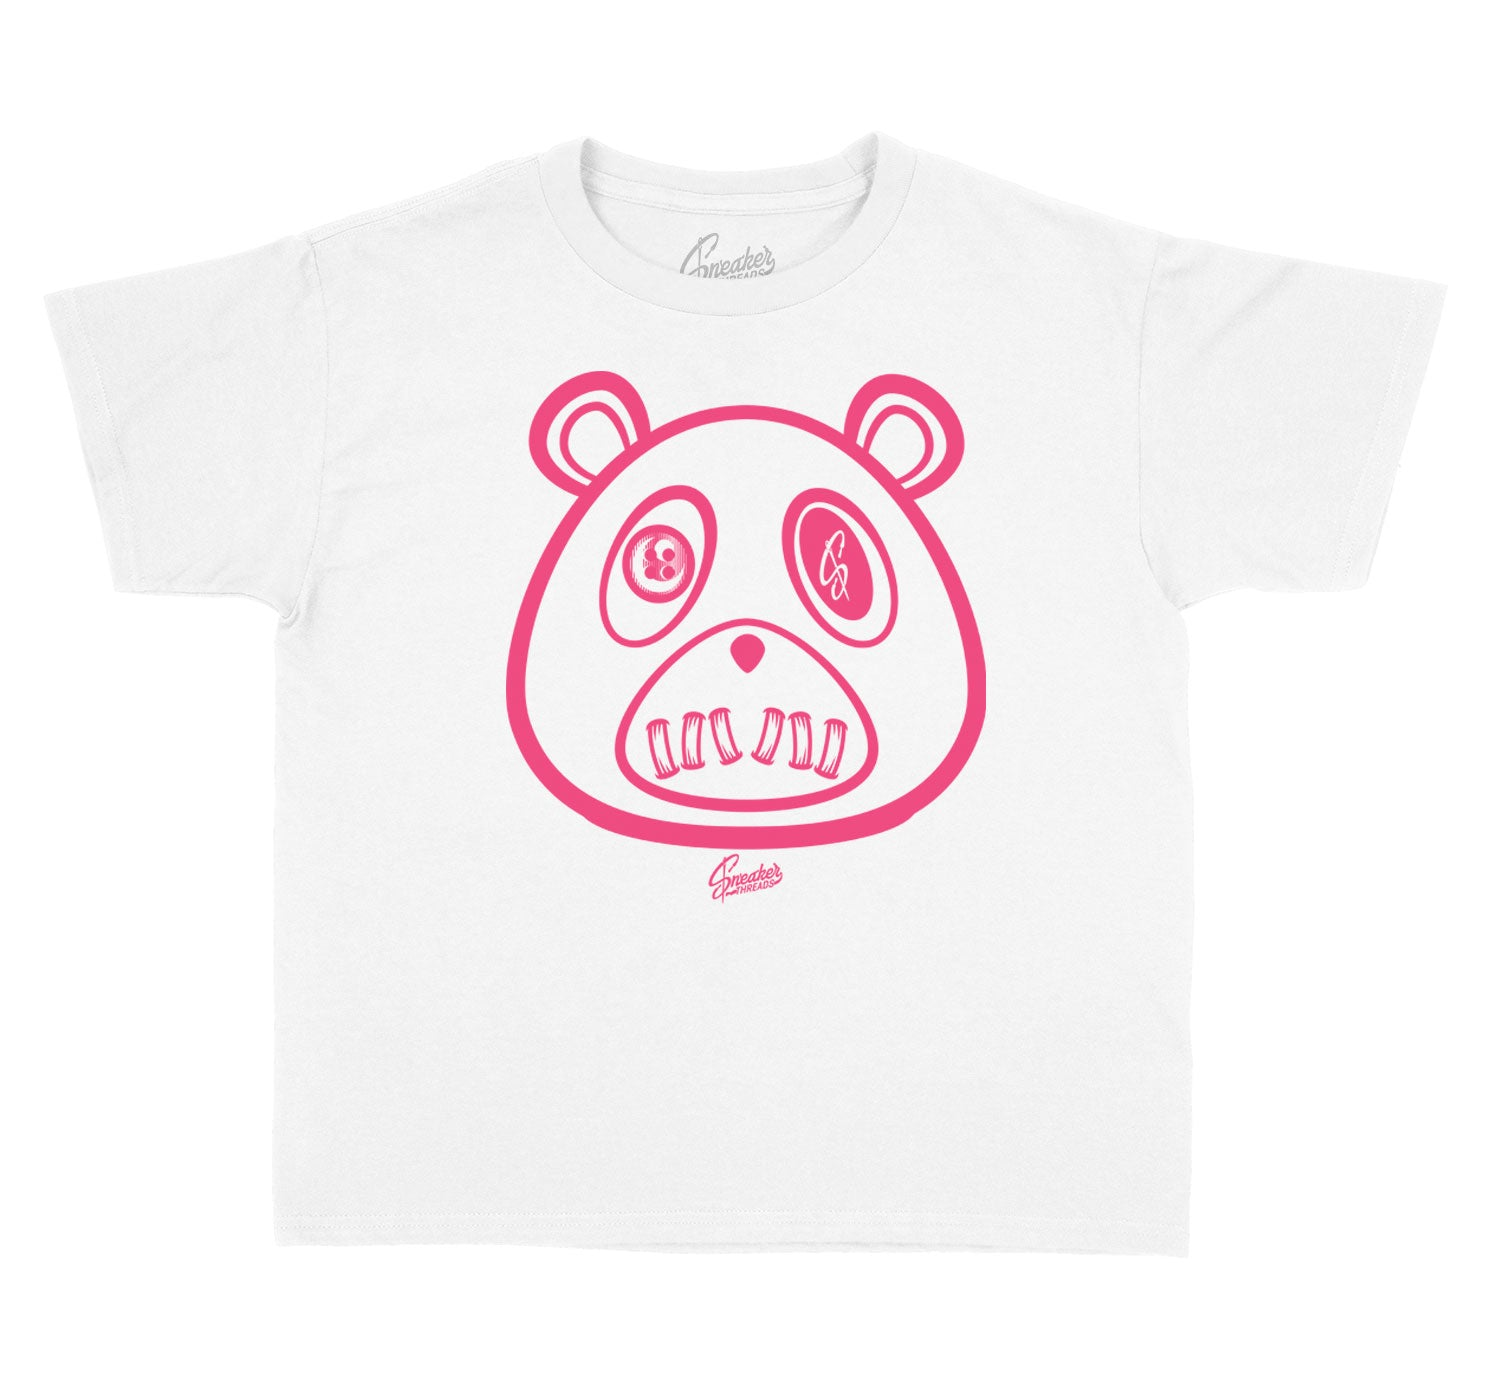 Kids Ice Cream 12 Shirt - ST Bear - White